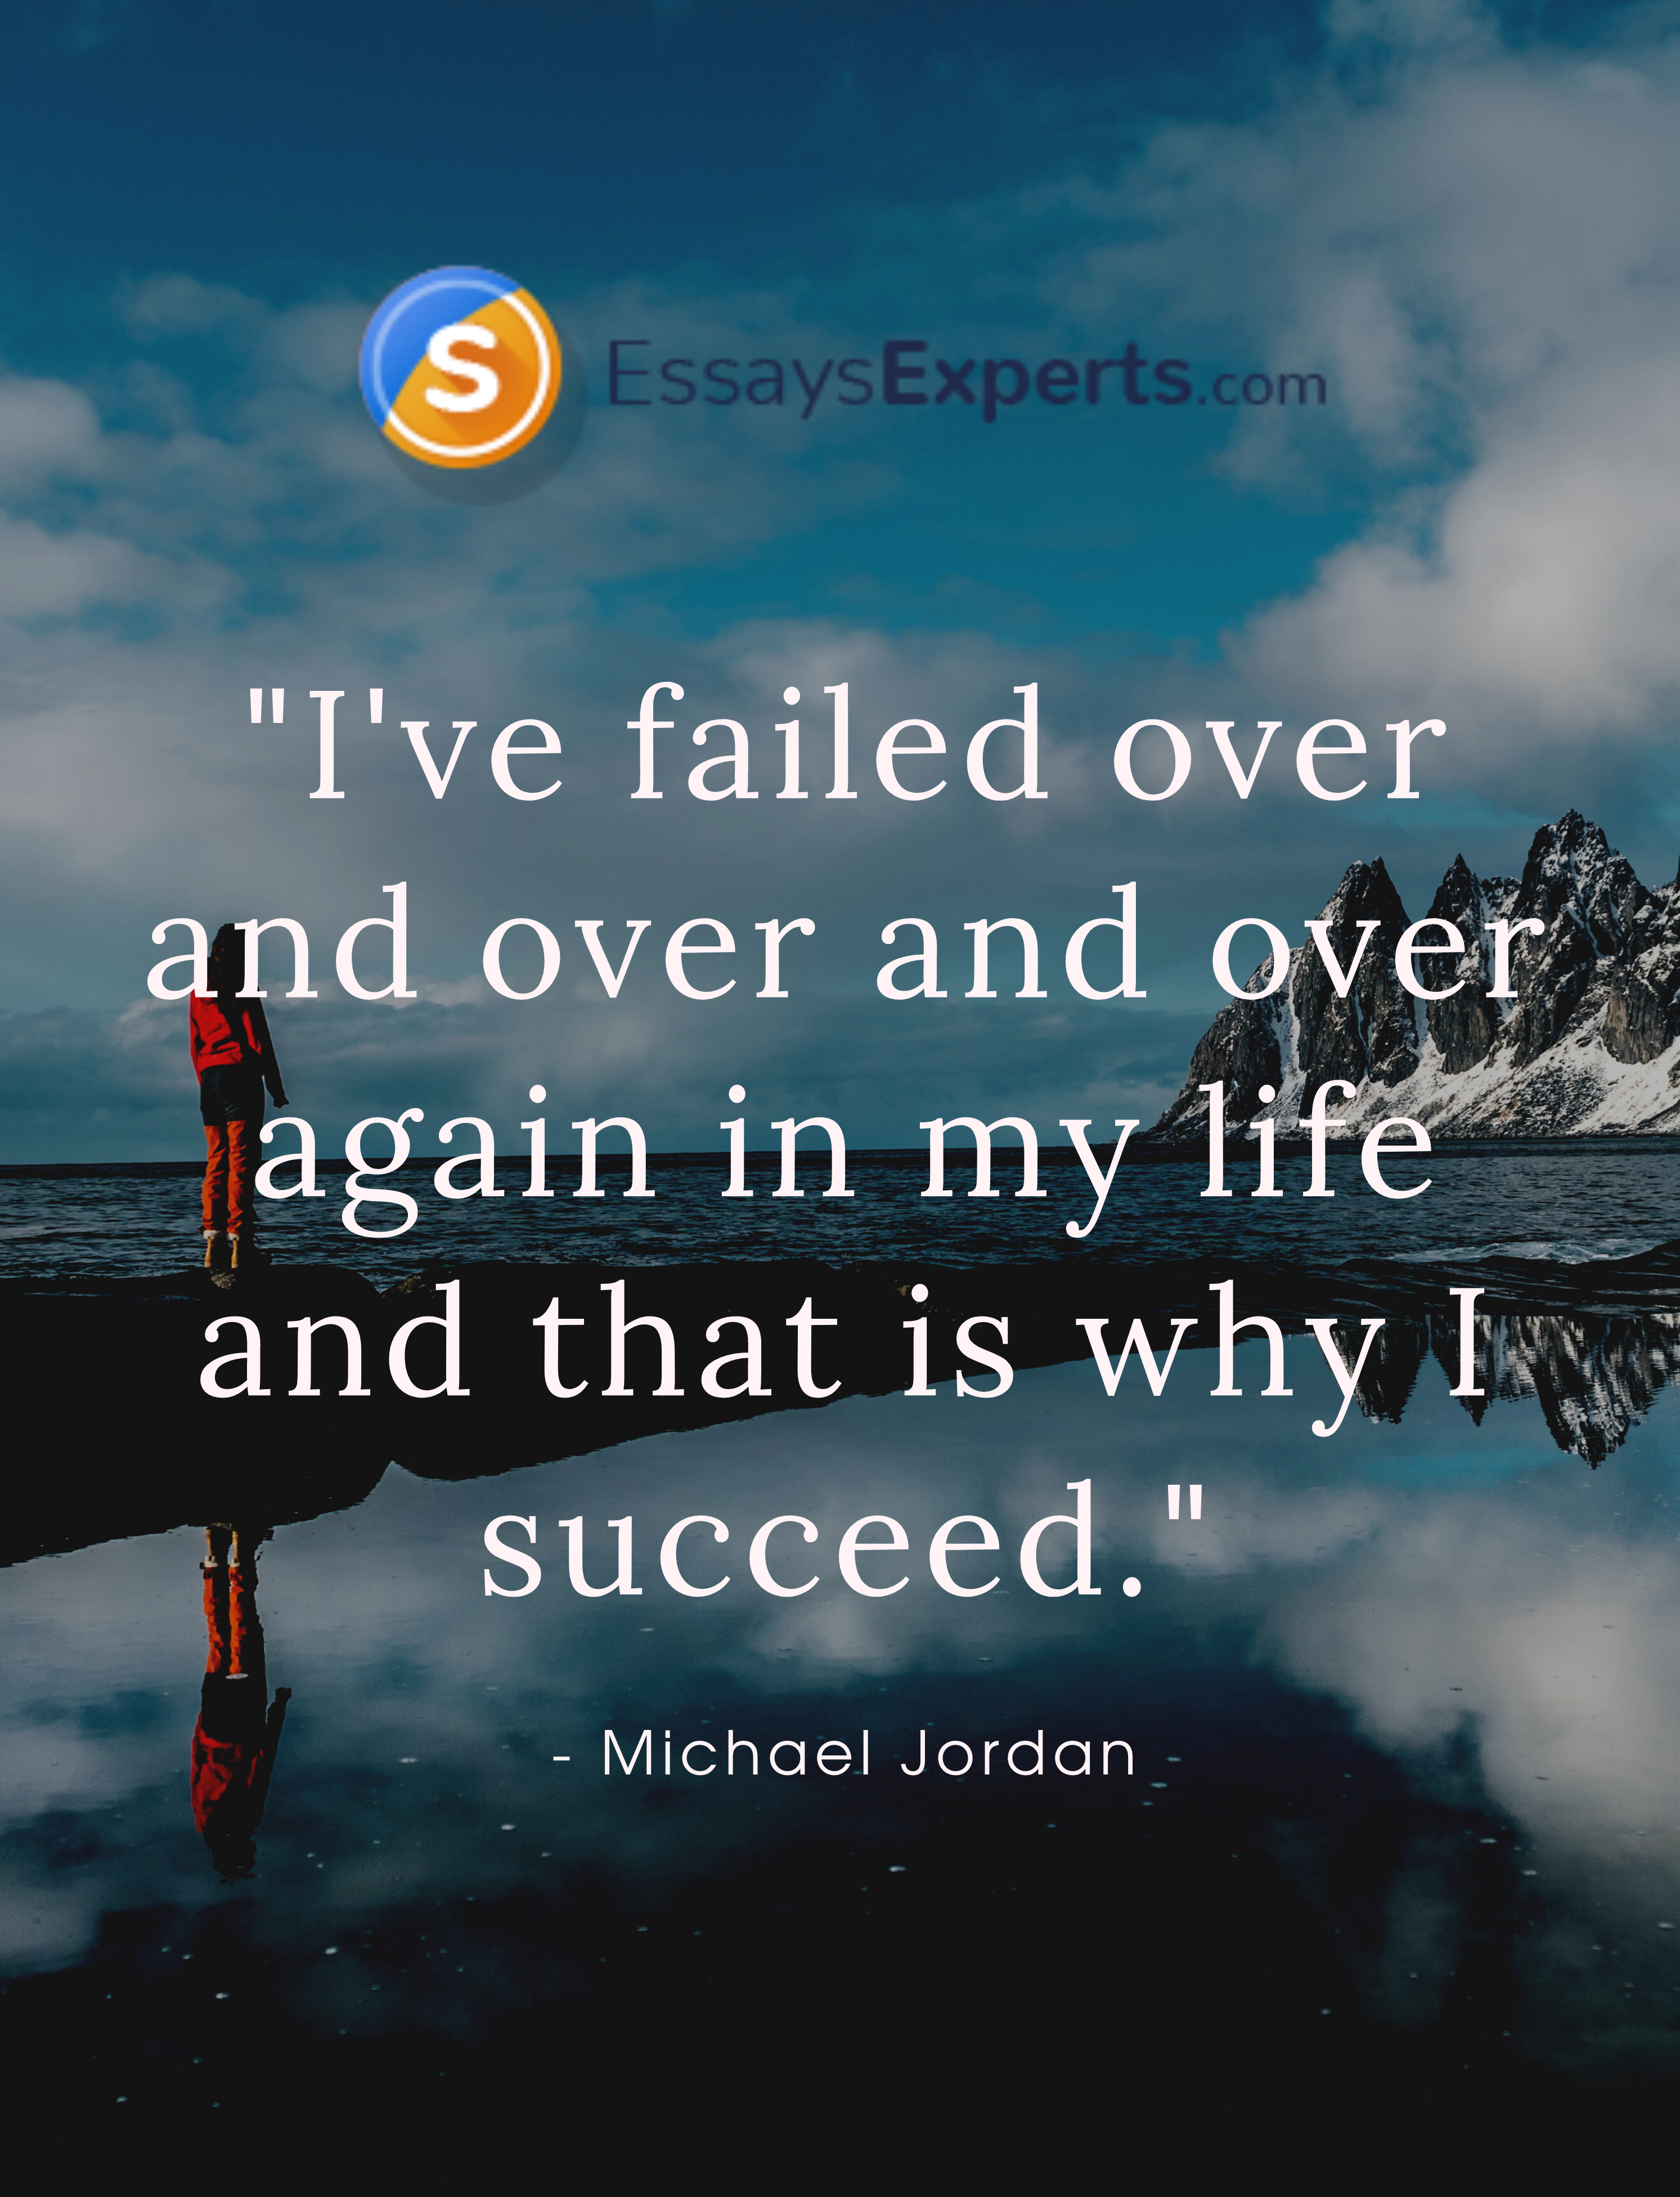 I Ve Failed Over And Again In My Life That Why Succeed Michael Jordan Cute Quote Quotation Essay Writing On